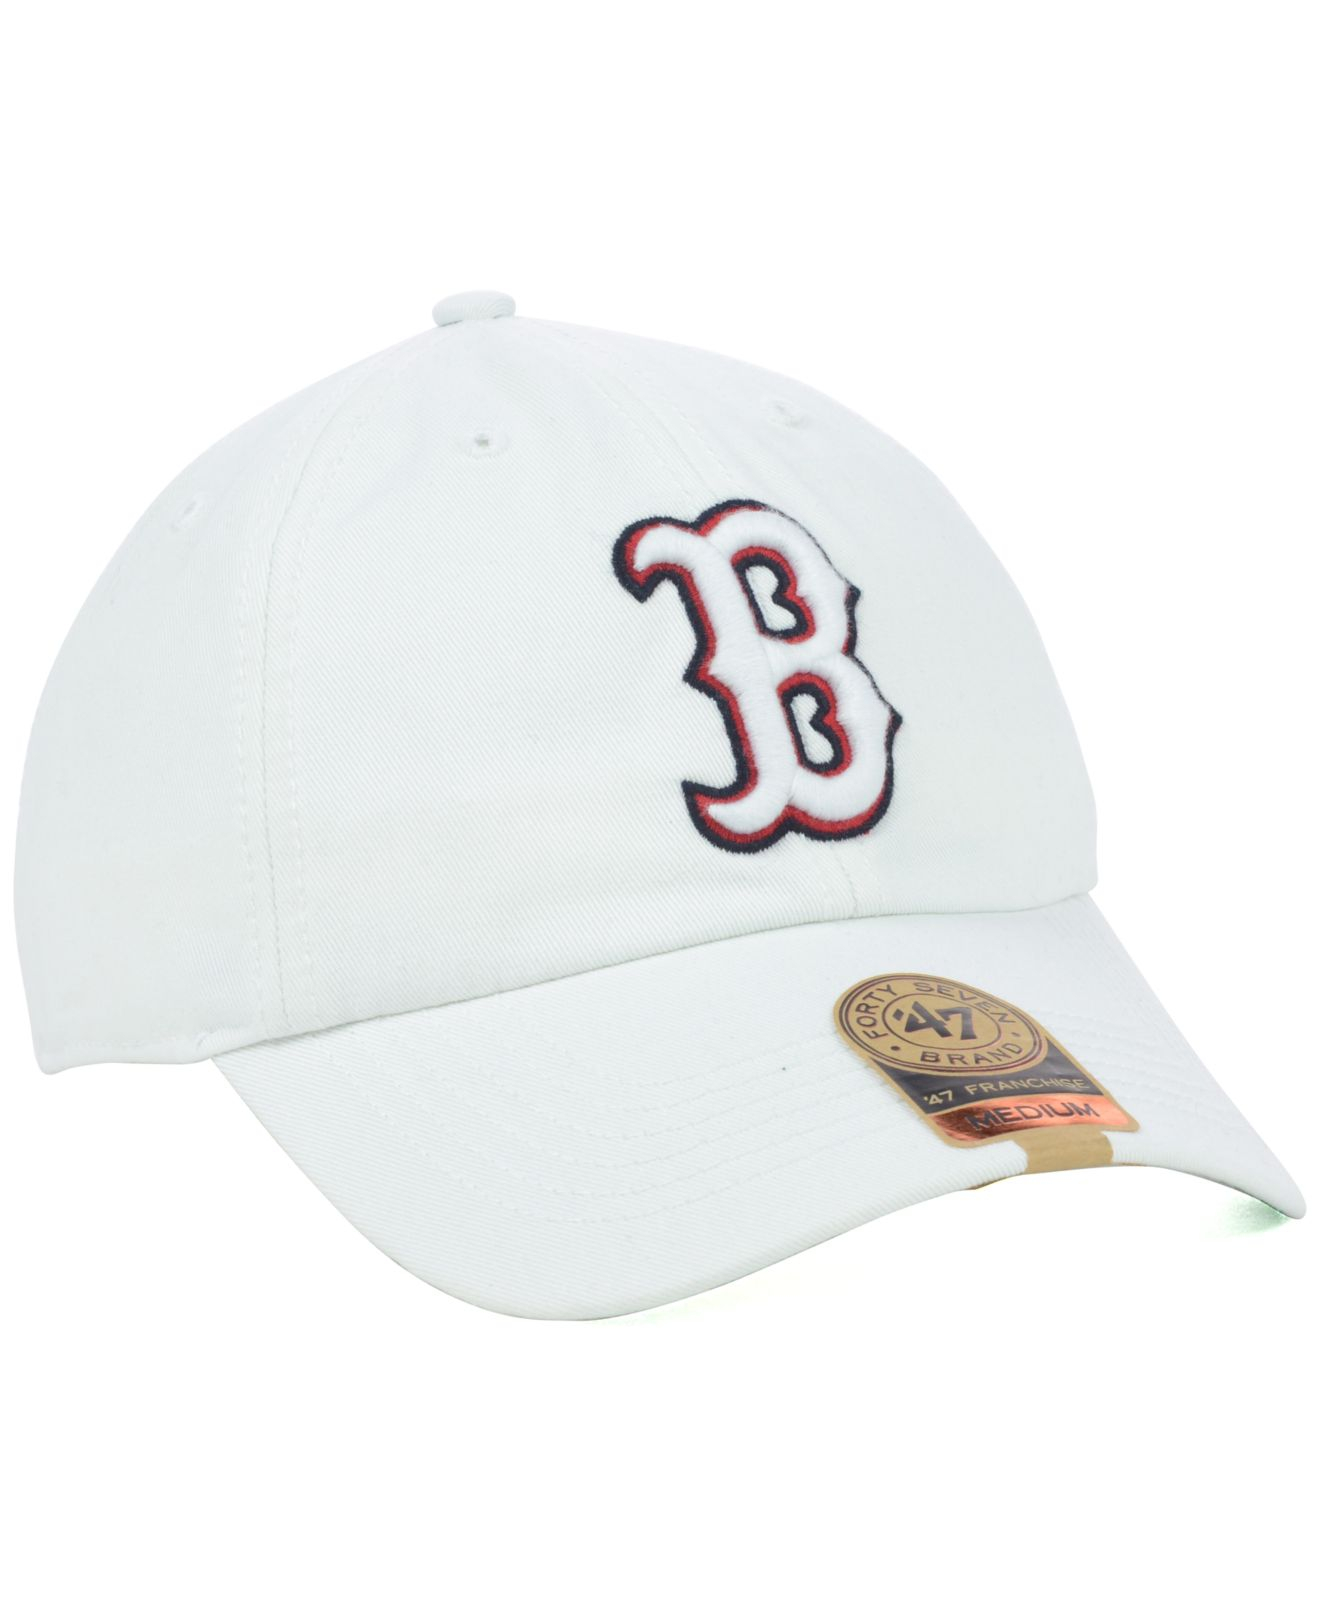 6af5bc22fb952 new zealand lyst 47 brand boston red sox hall of famer franchise cap in  blue 092a7 d24df  reduced lyst 47 brand boston red sox shiver franchise cap  in white ...